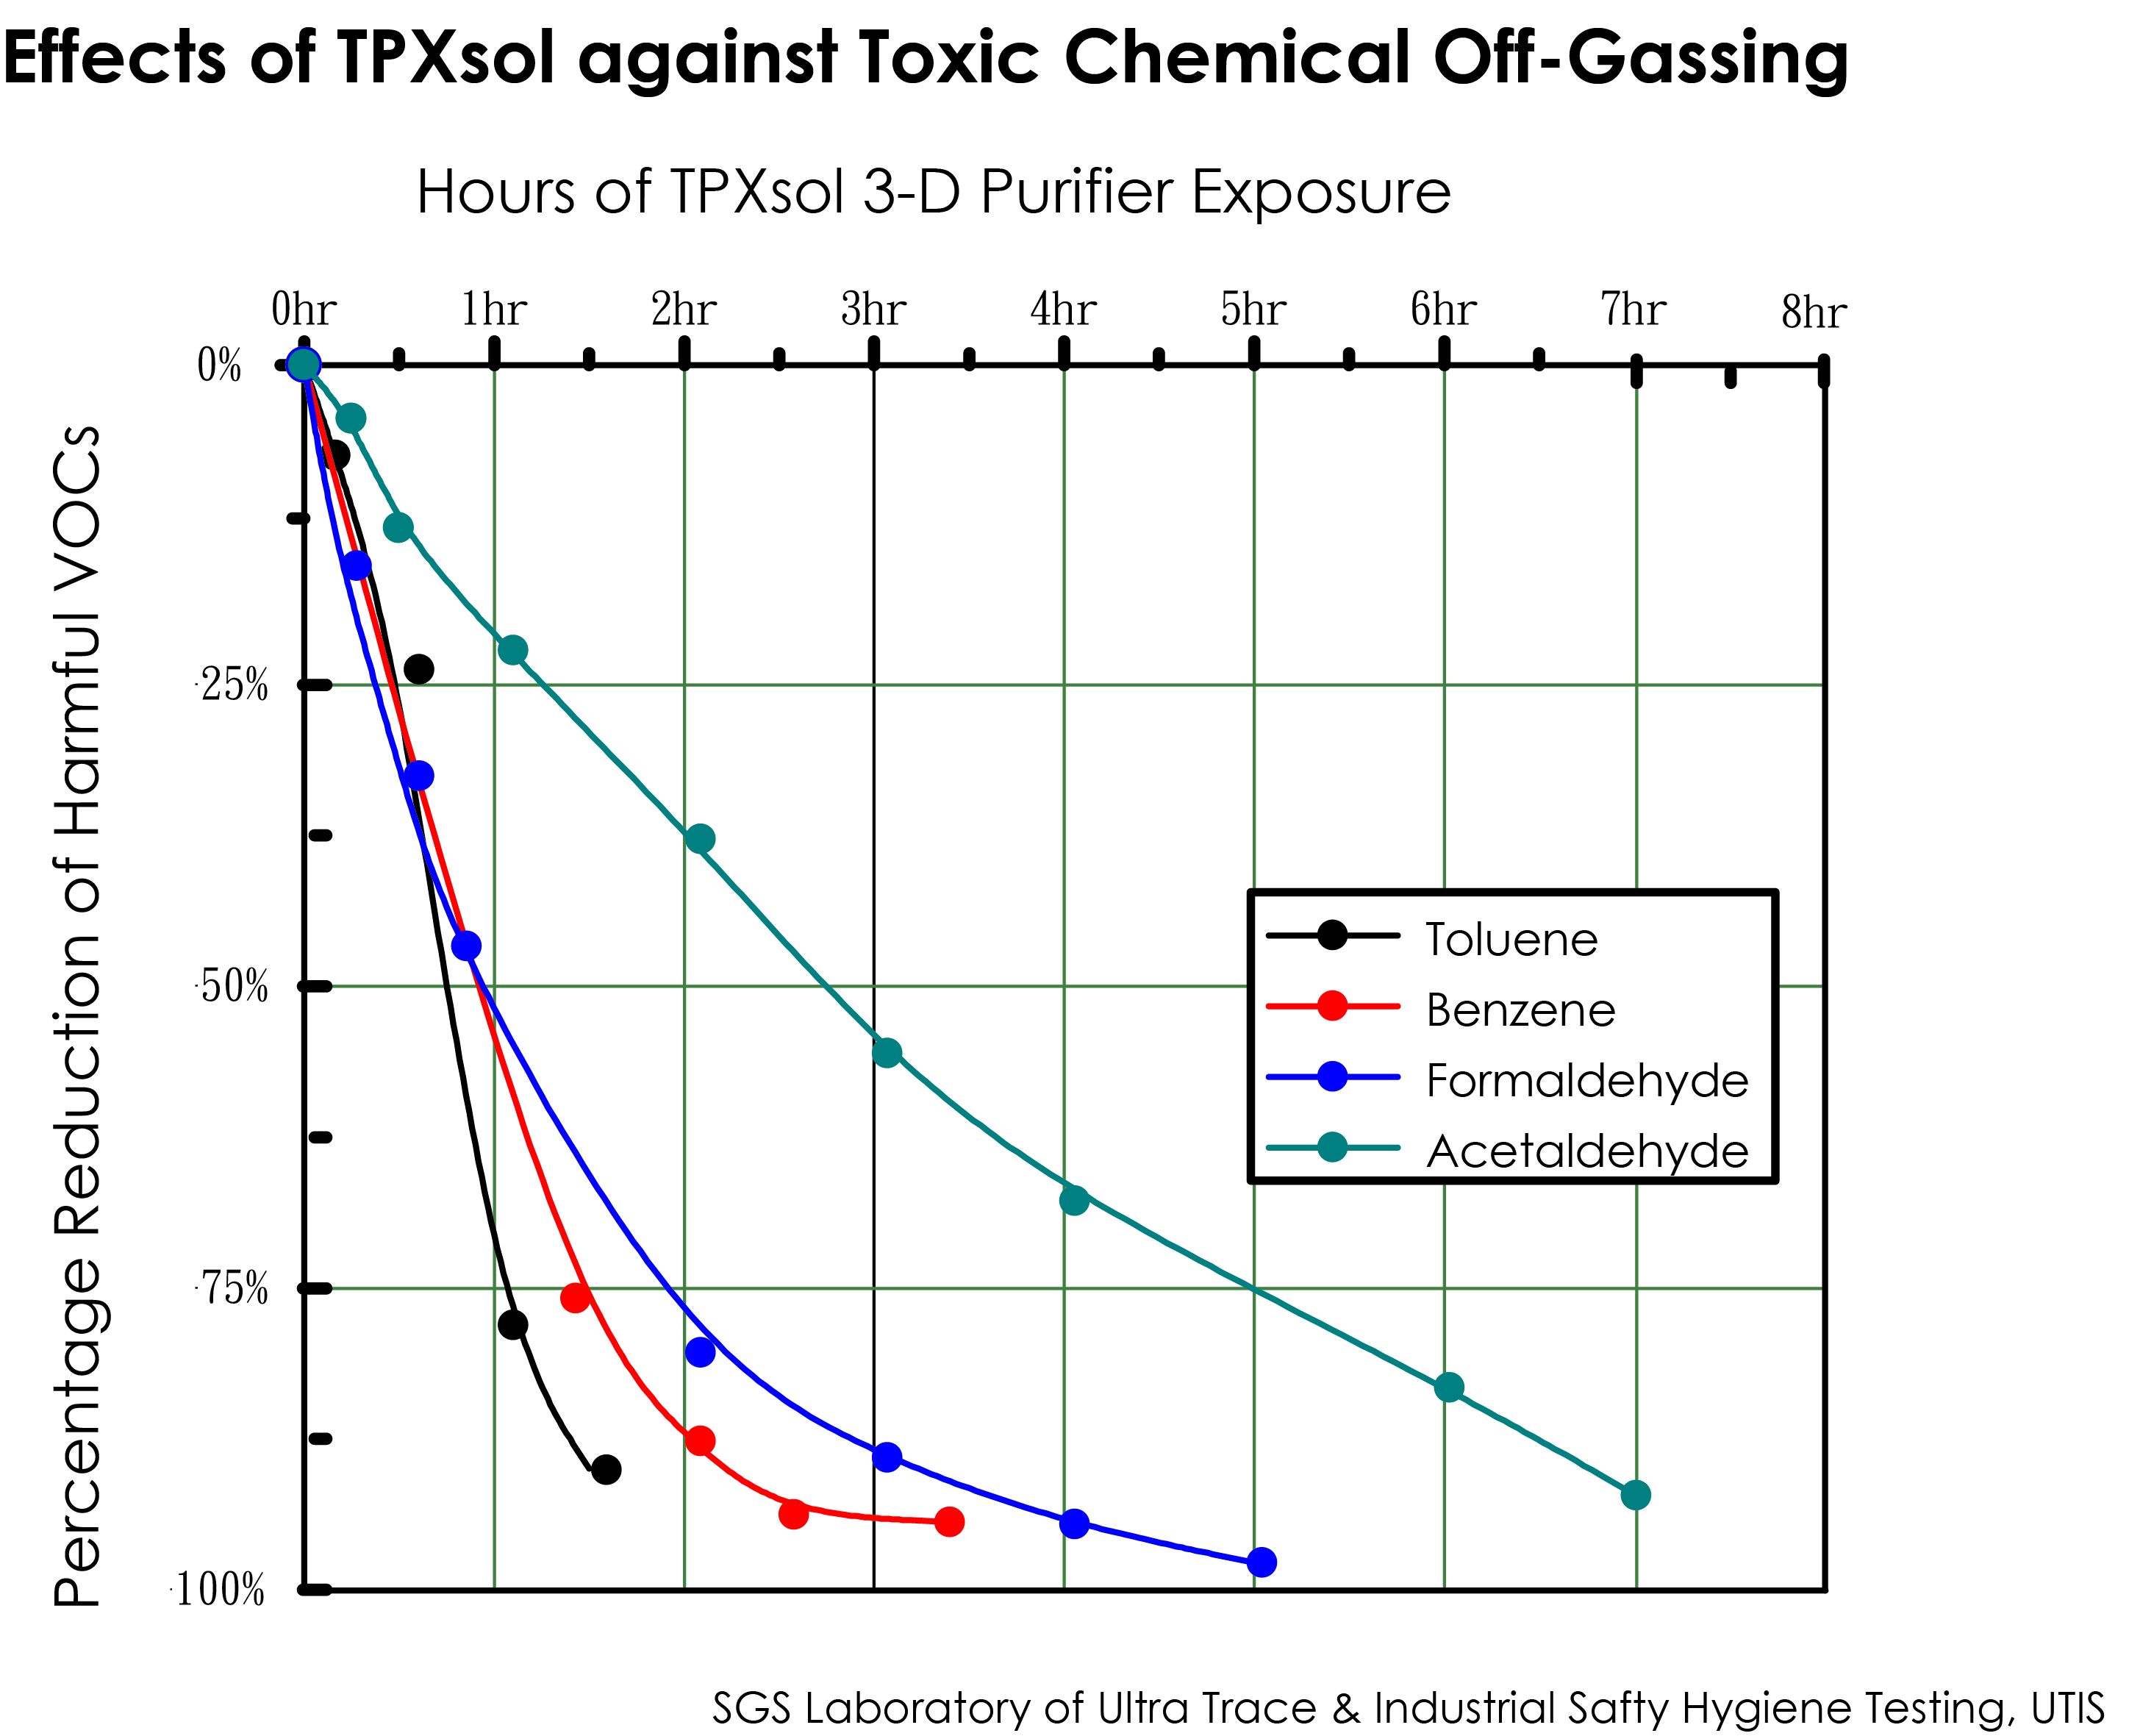 TPXsol against toxic chemical off-gassing